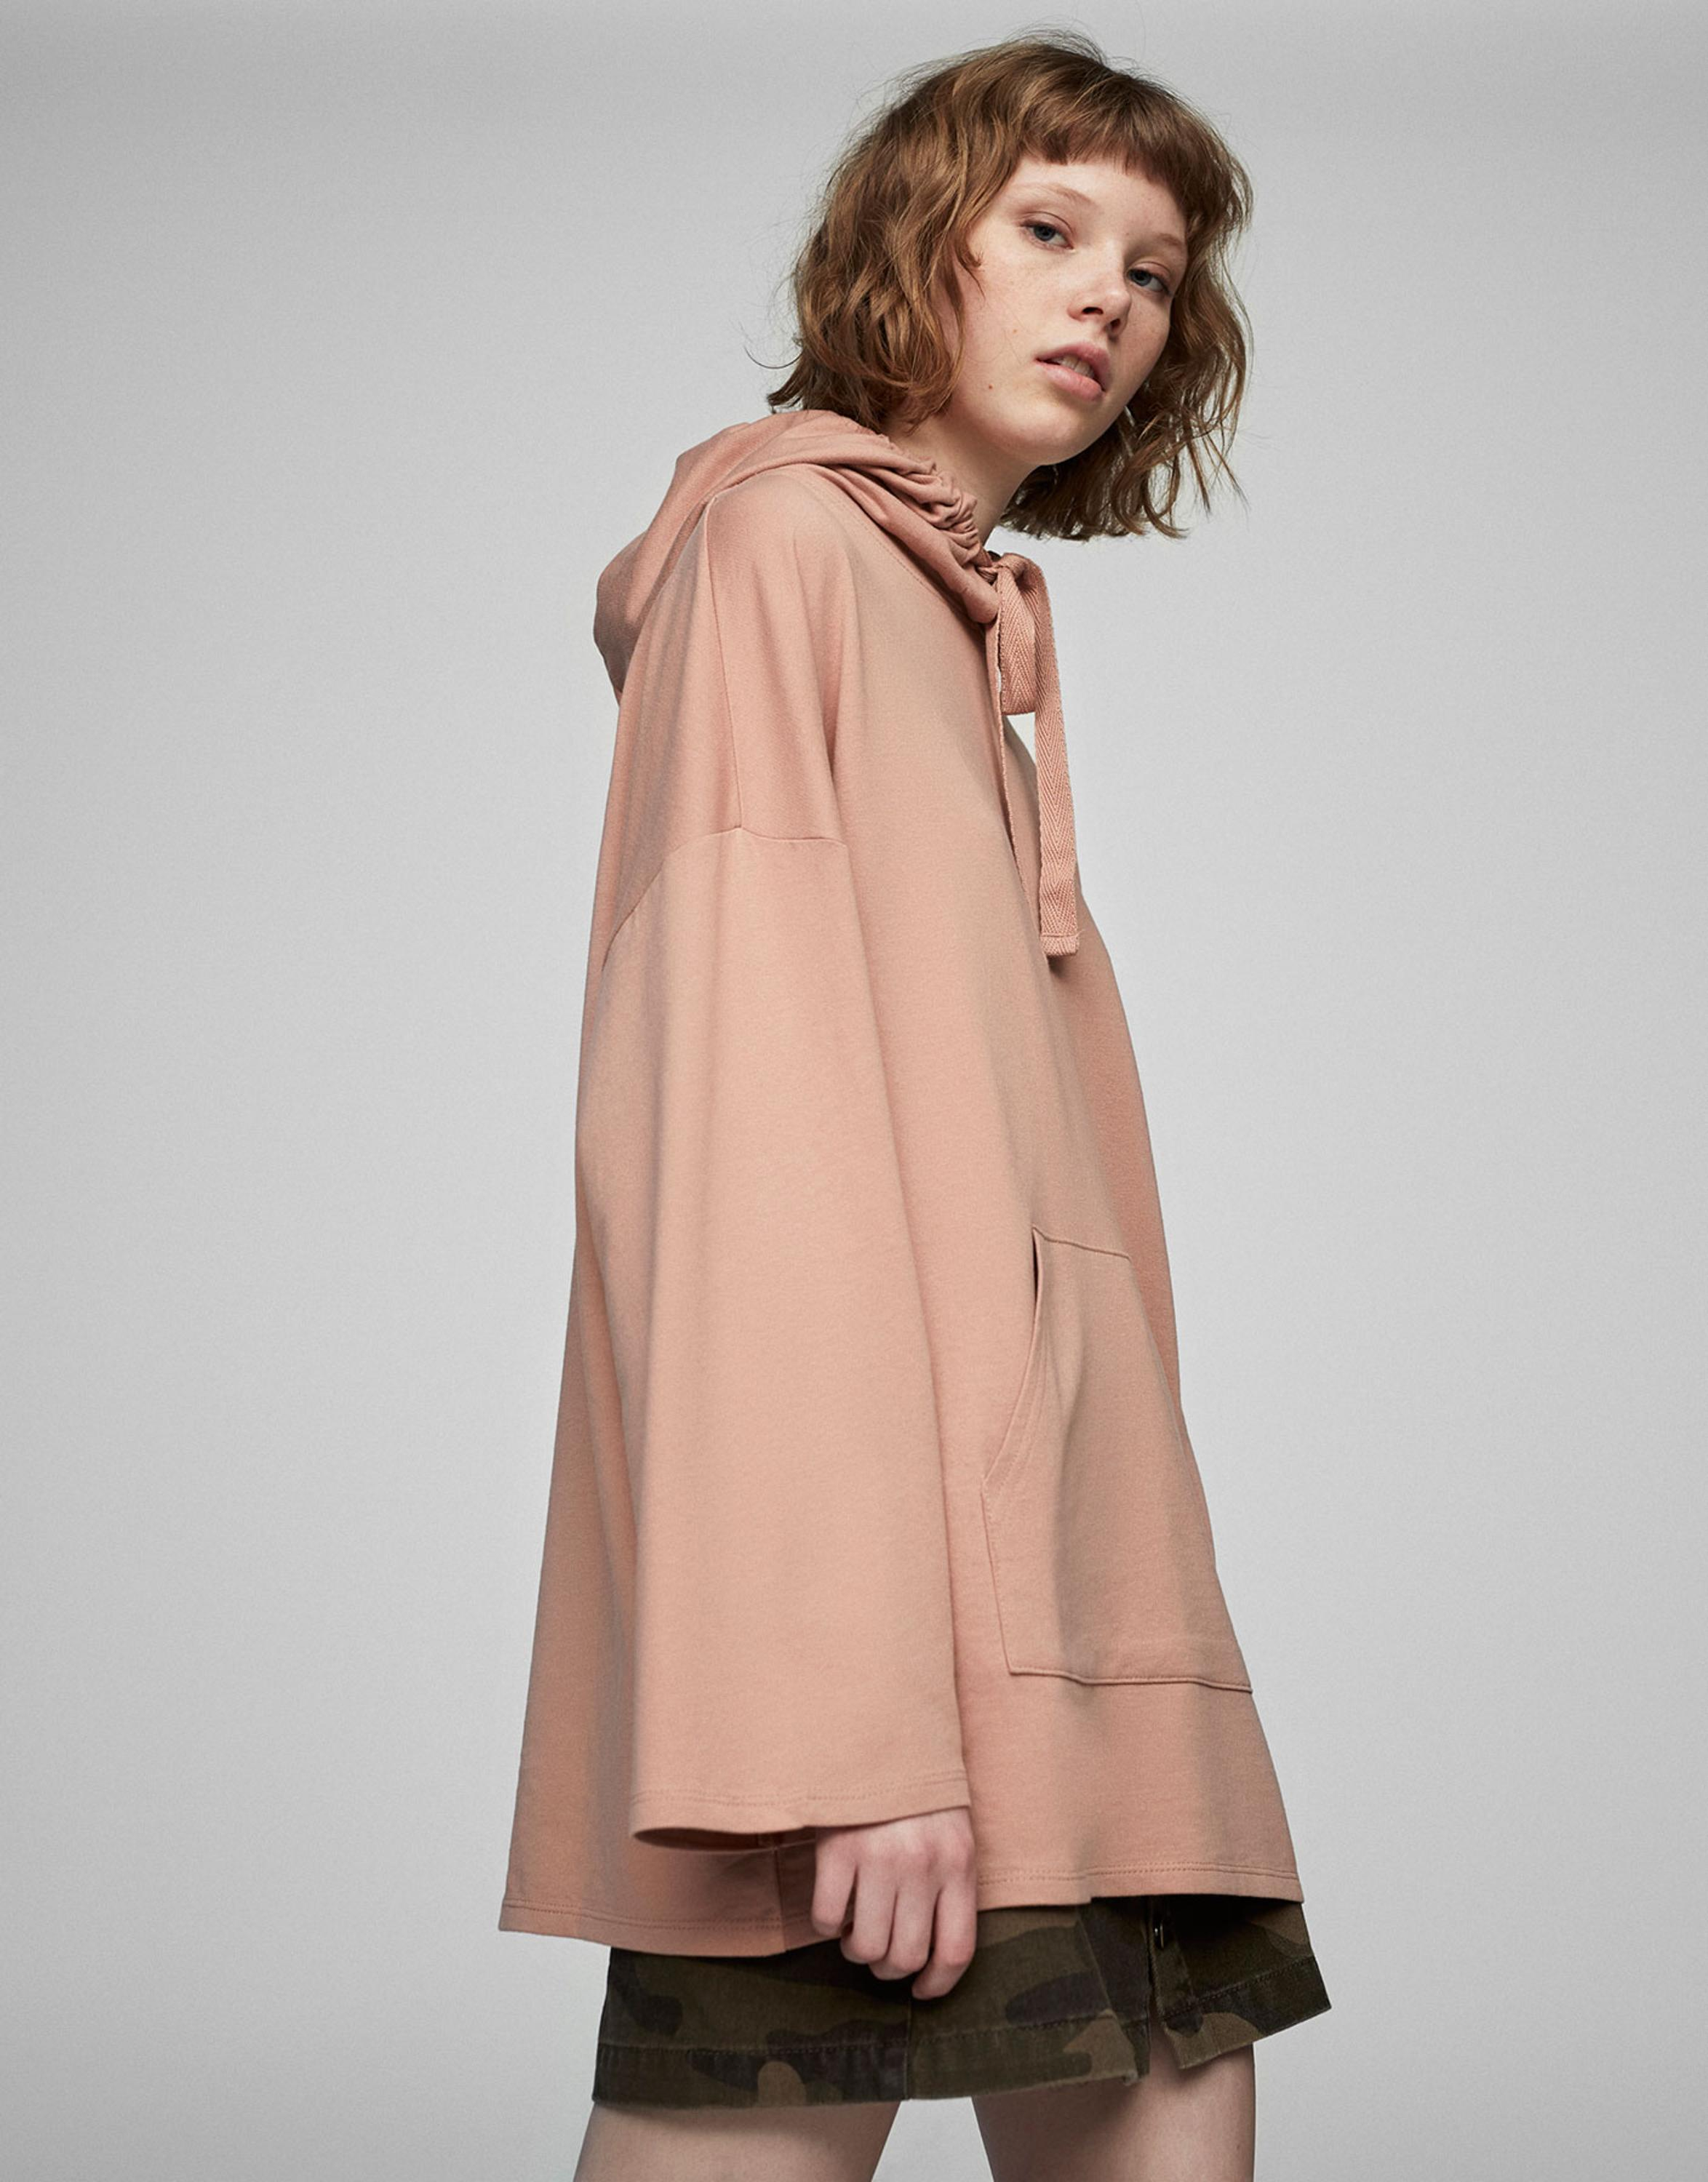 Fall autumn casual loose thin hoodie nude off white hoodie color midi frocks 2017 new style OEM clothes